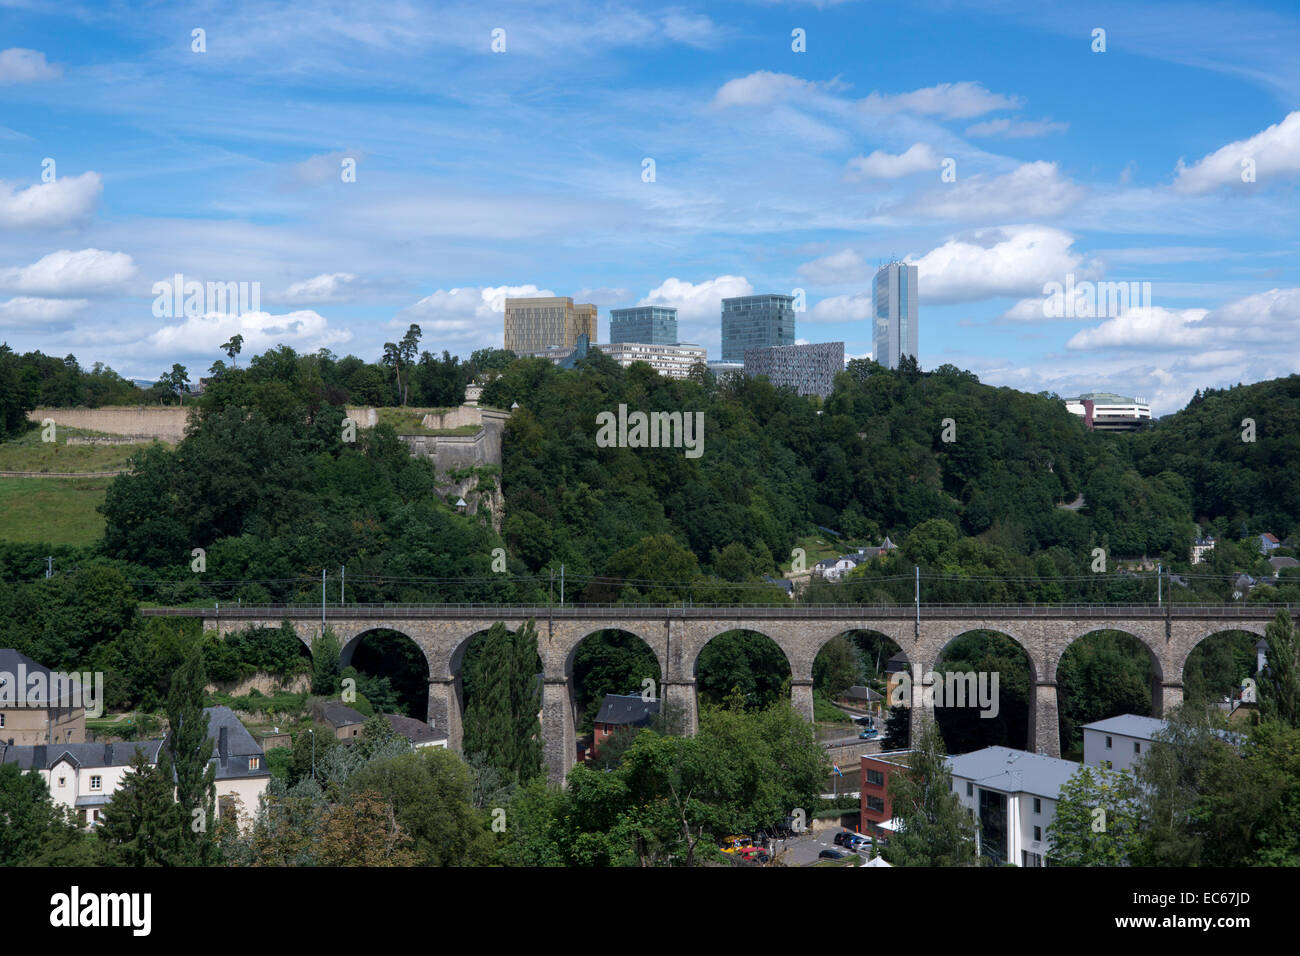 View of the Clausen Viaduct, in the background the Kirchberg District, Luxembourg City, Luxembourg, Europe - Stock Image